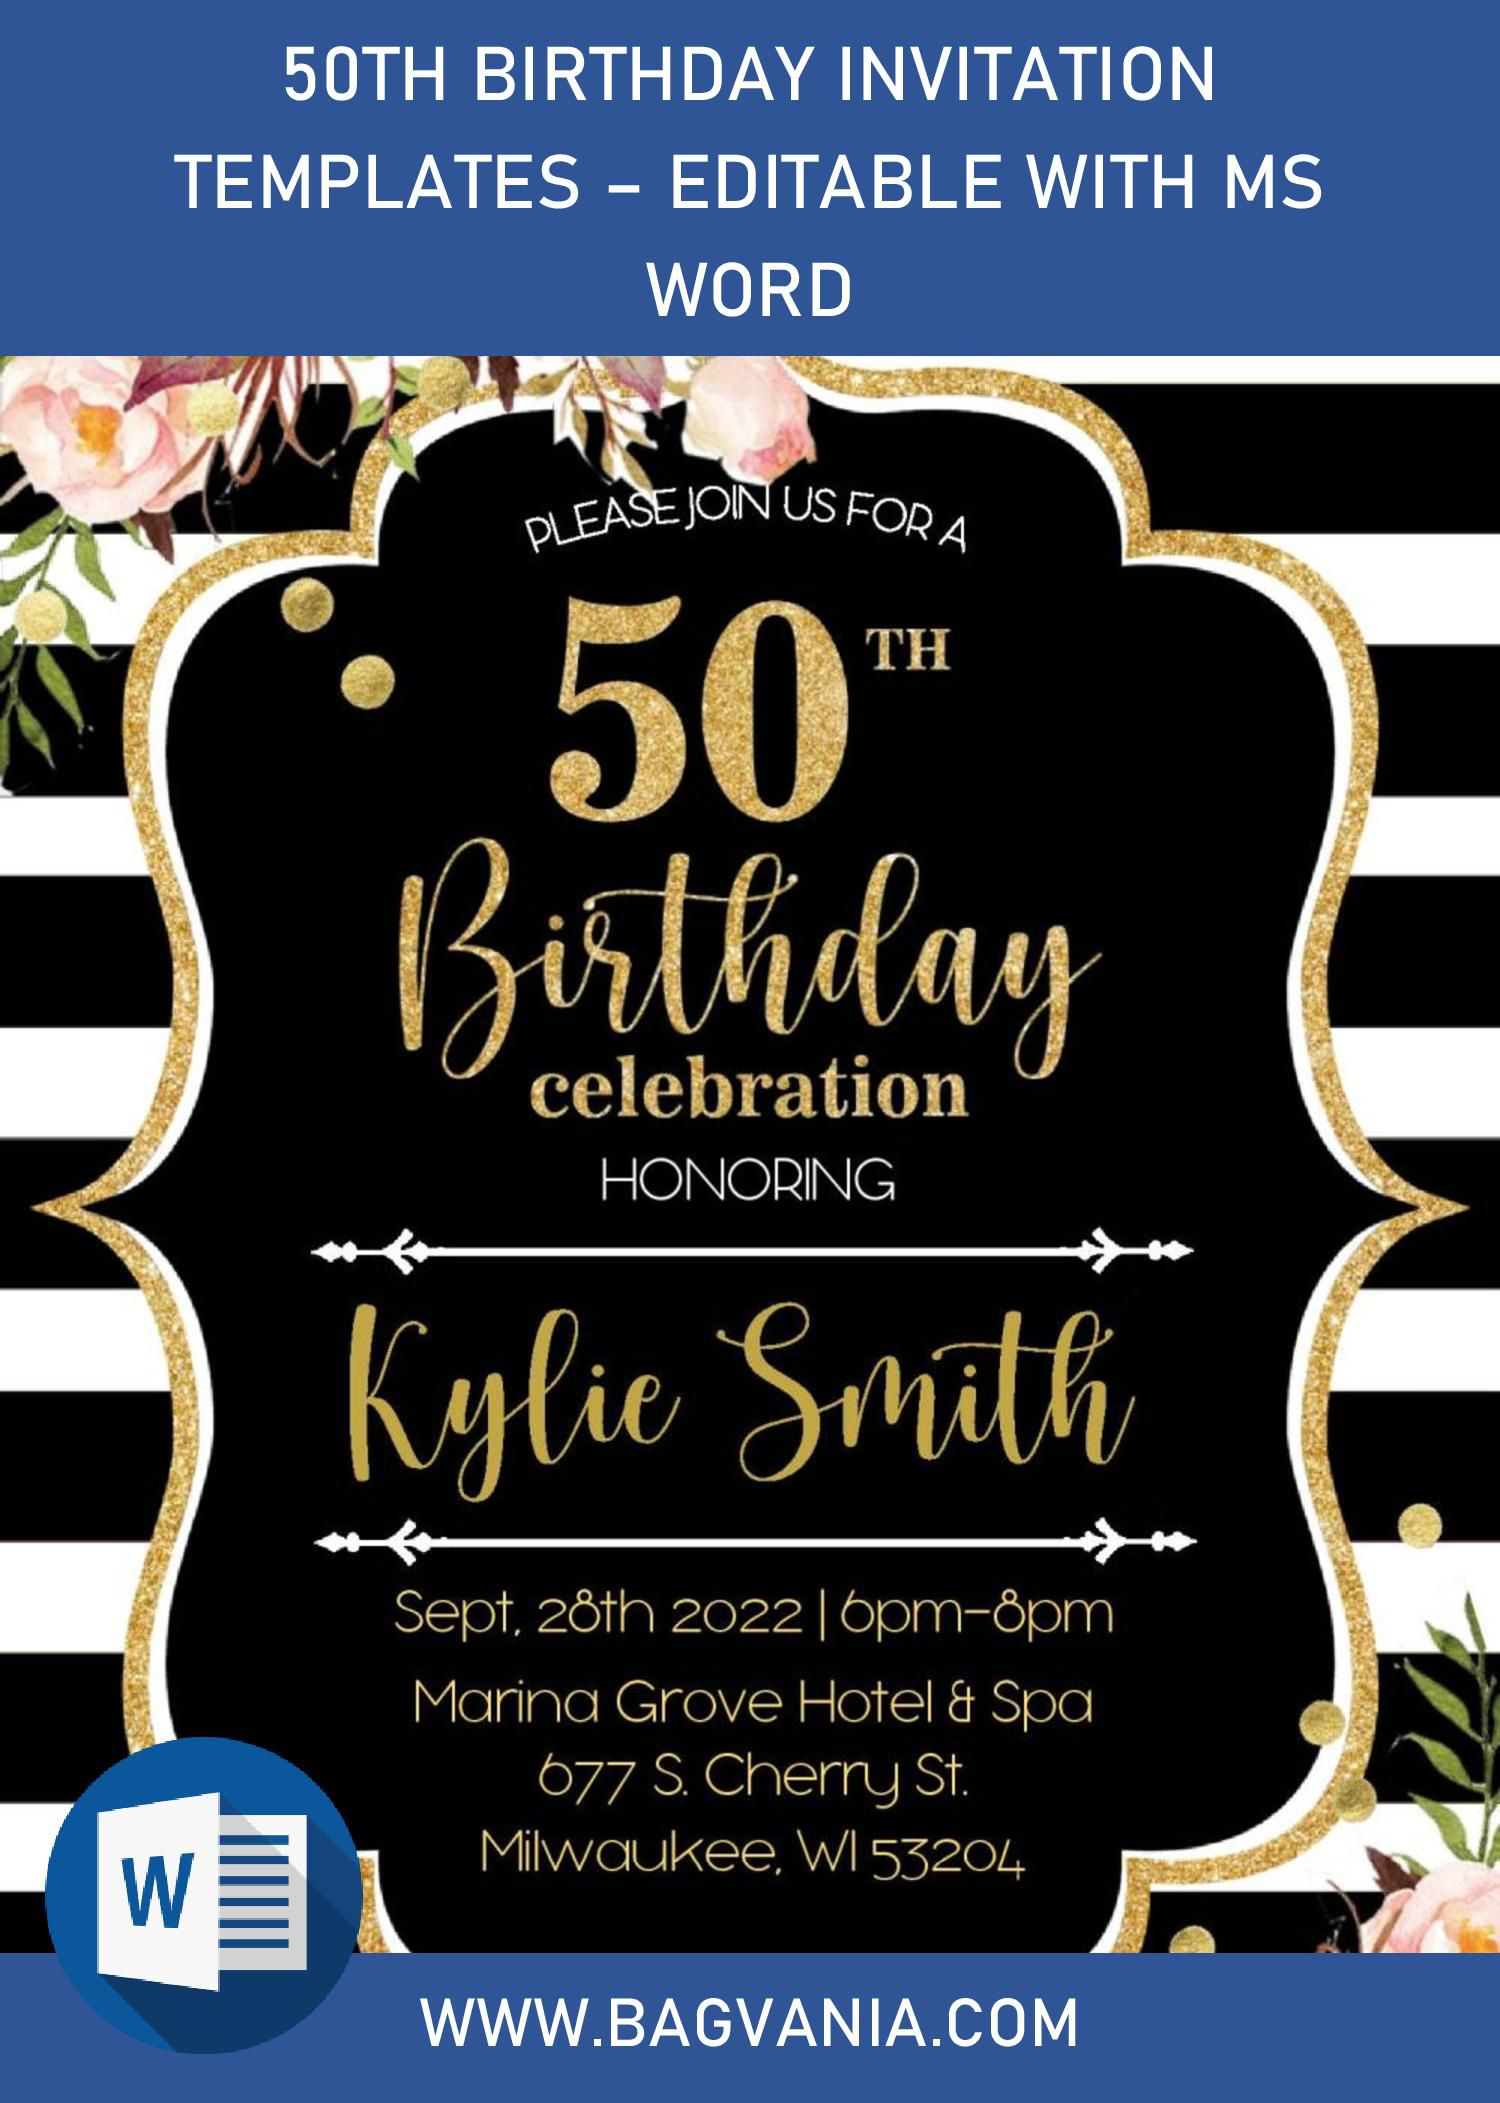 003 Phenomenal Microsoft Word 50th Birthday Invitation Template Highest Quality  Wedding Anniversary EditableFull